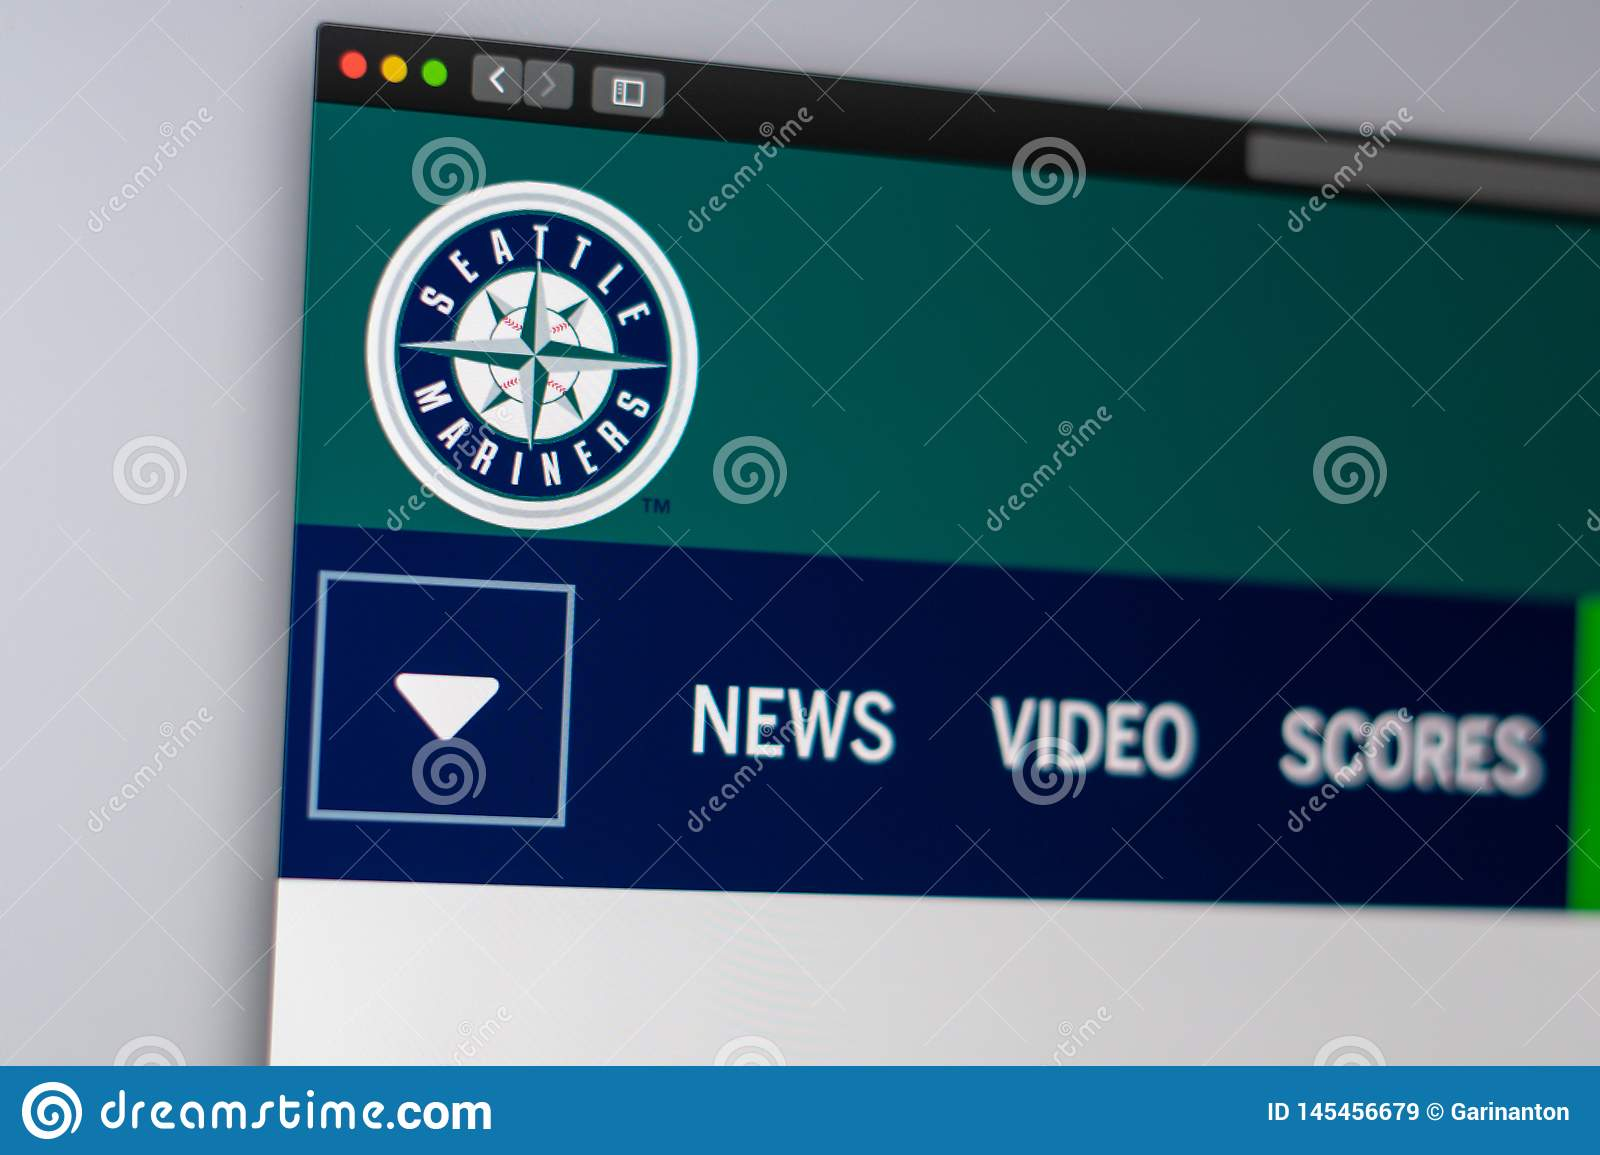 baseball team seattle mariners